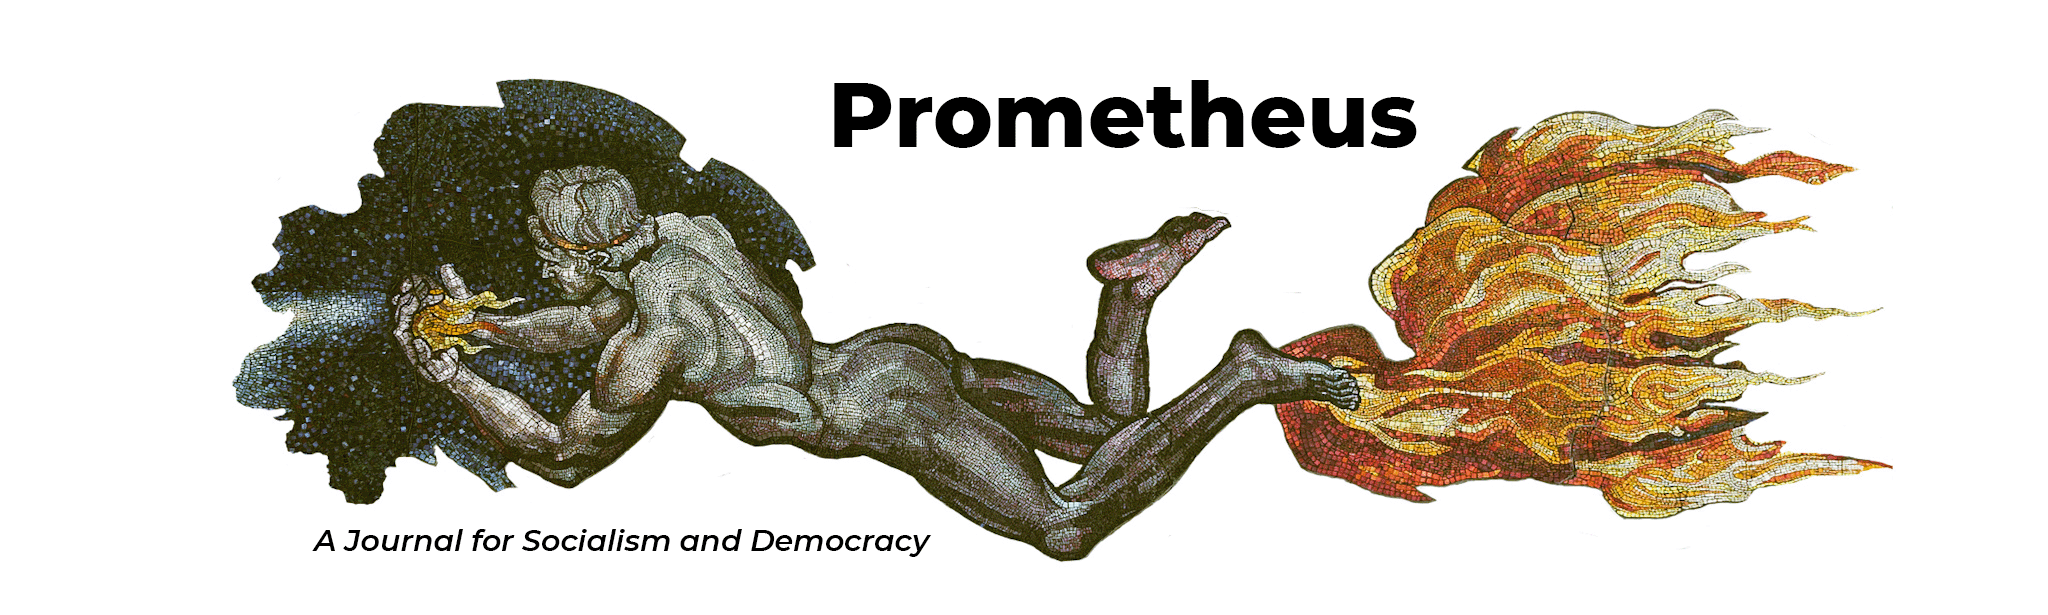 Prometheus - A Journal of Socialism and Democracy